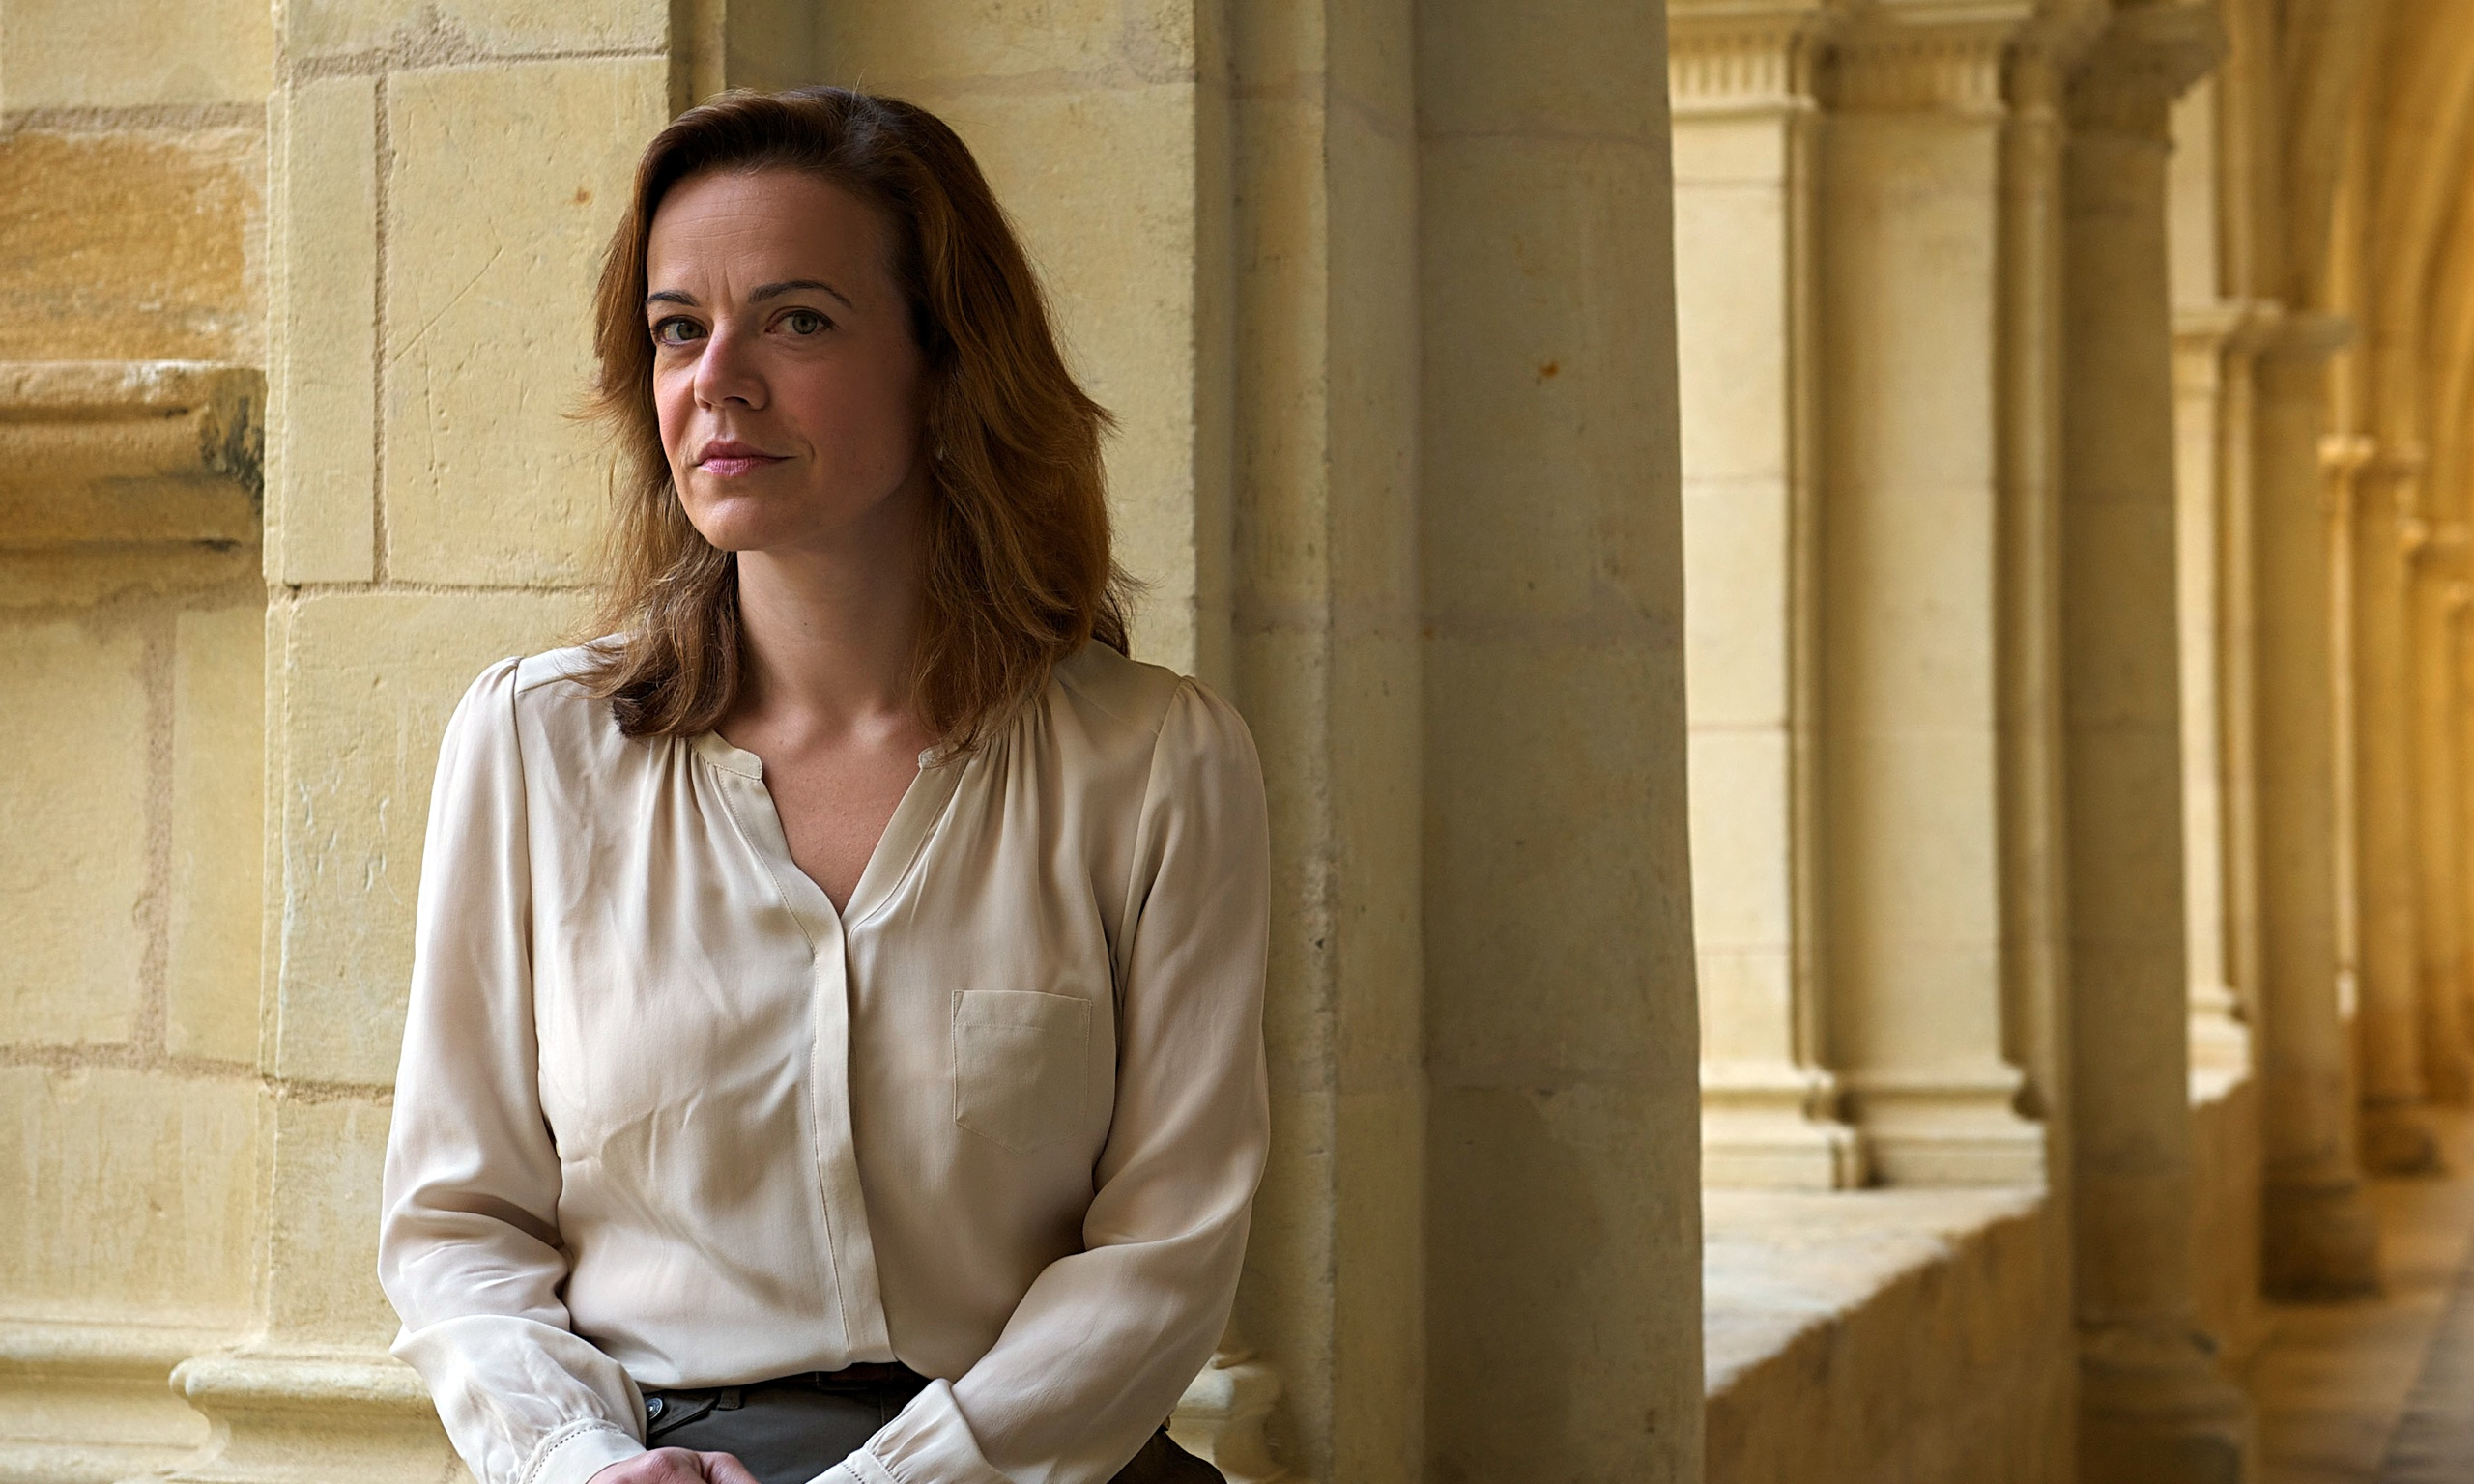 Joan of Arc: God's Warrior - presented by Helen Castor for the BBC